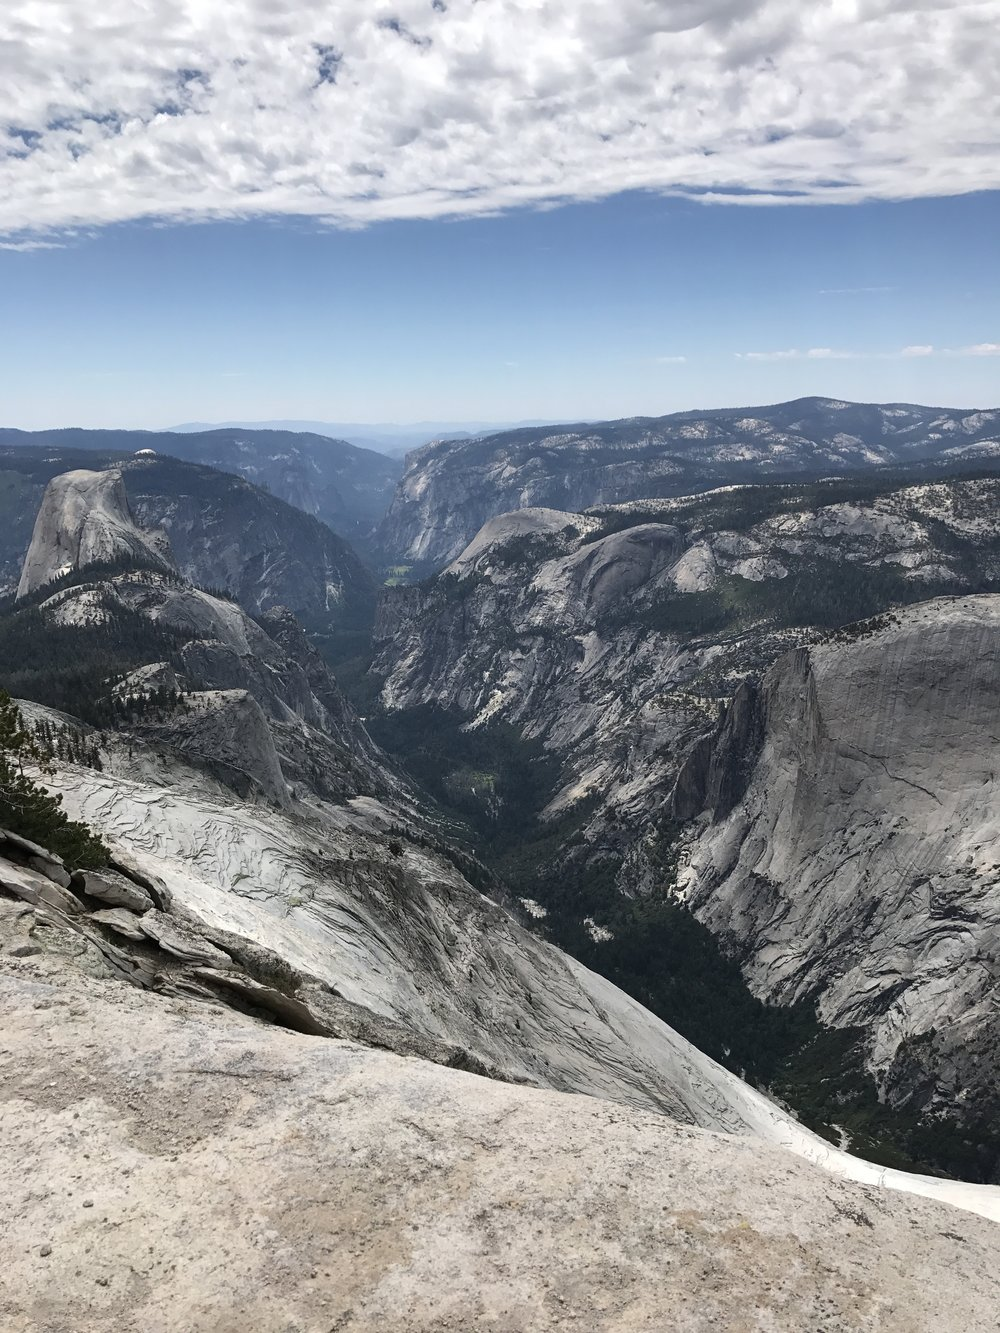 The summit has excellent views of the whole park, including Tenaya Canyon and Half Dome